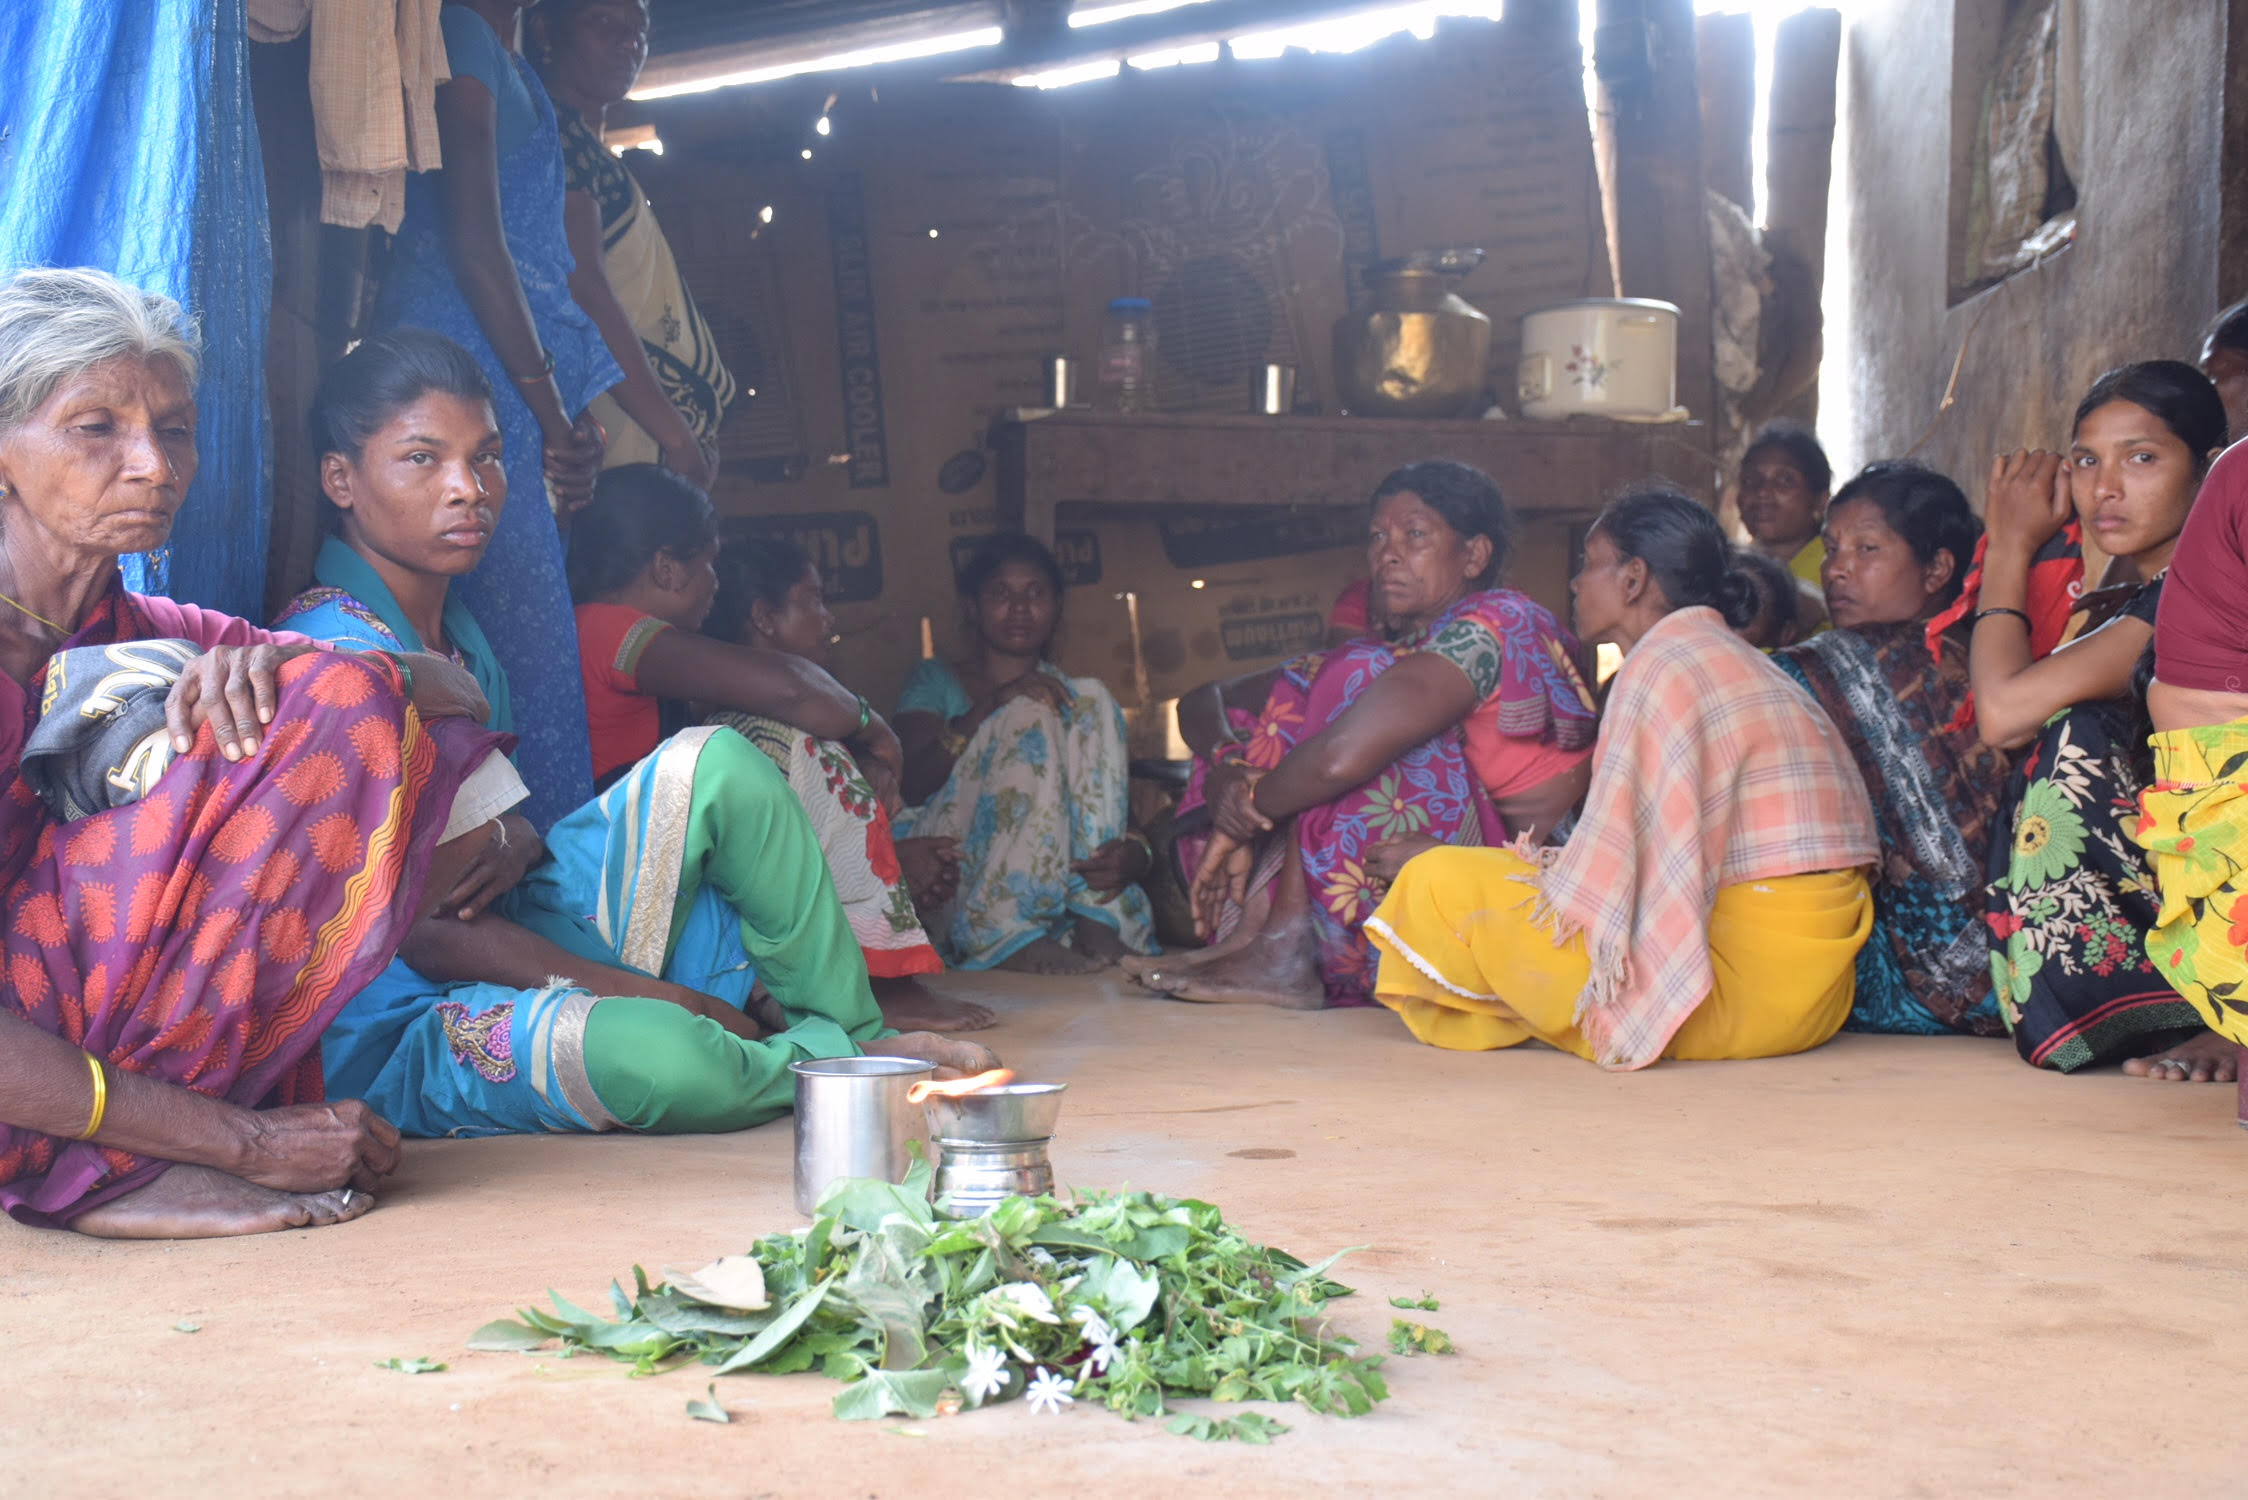 Etti Seenu's wife Kaushalya and other women mourn his death at his house in Marigudem village. Credit: Sukanya Shantha